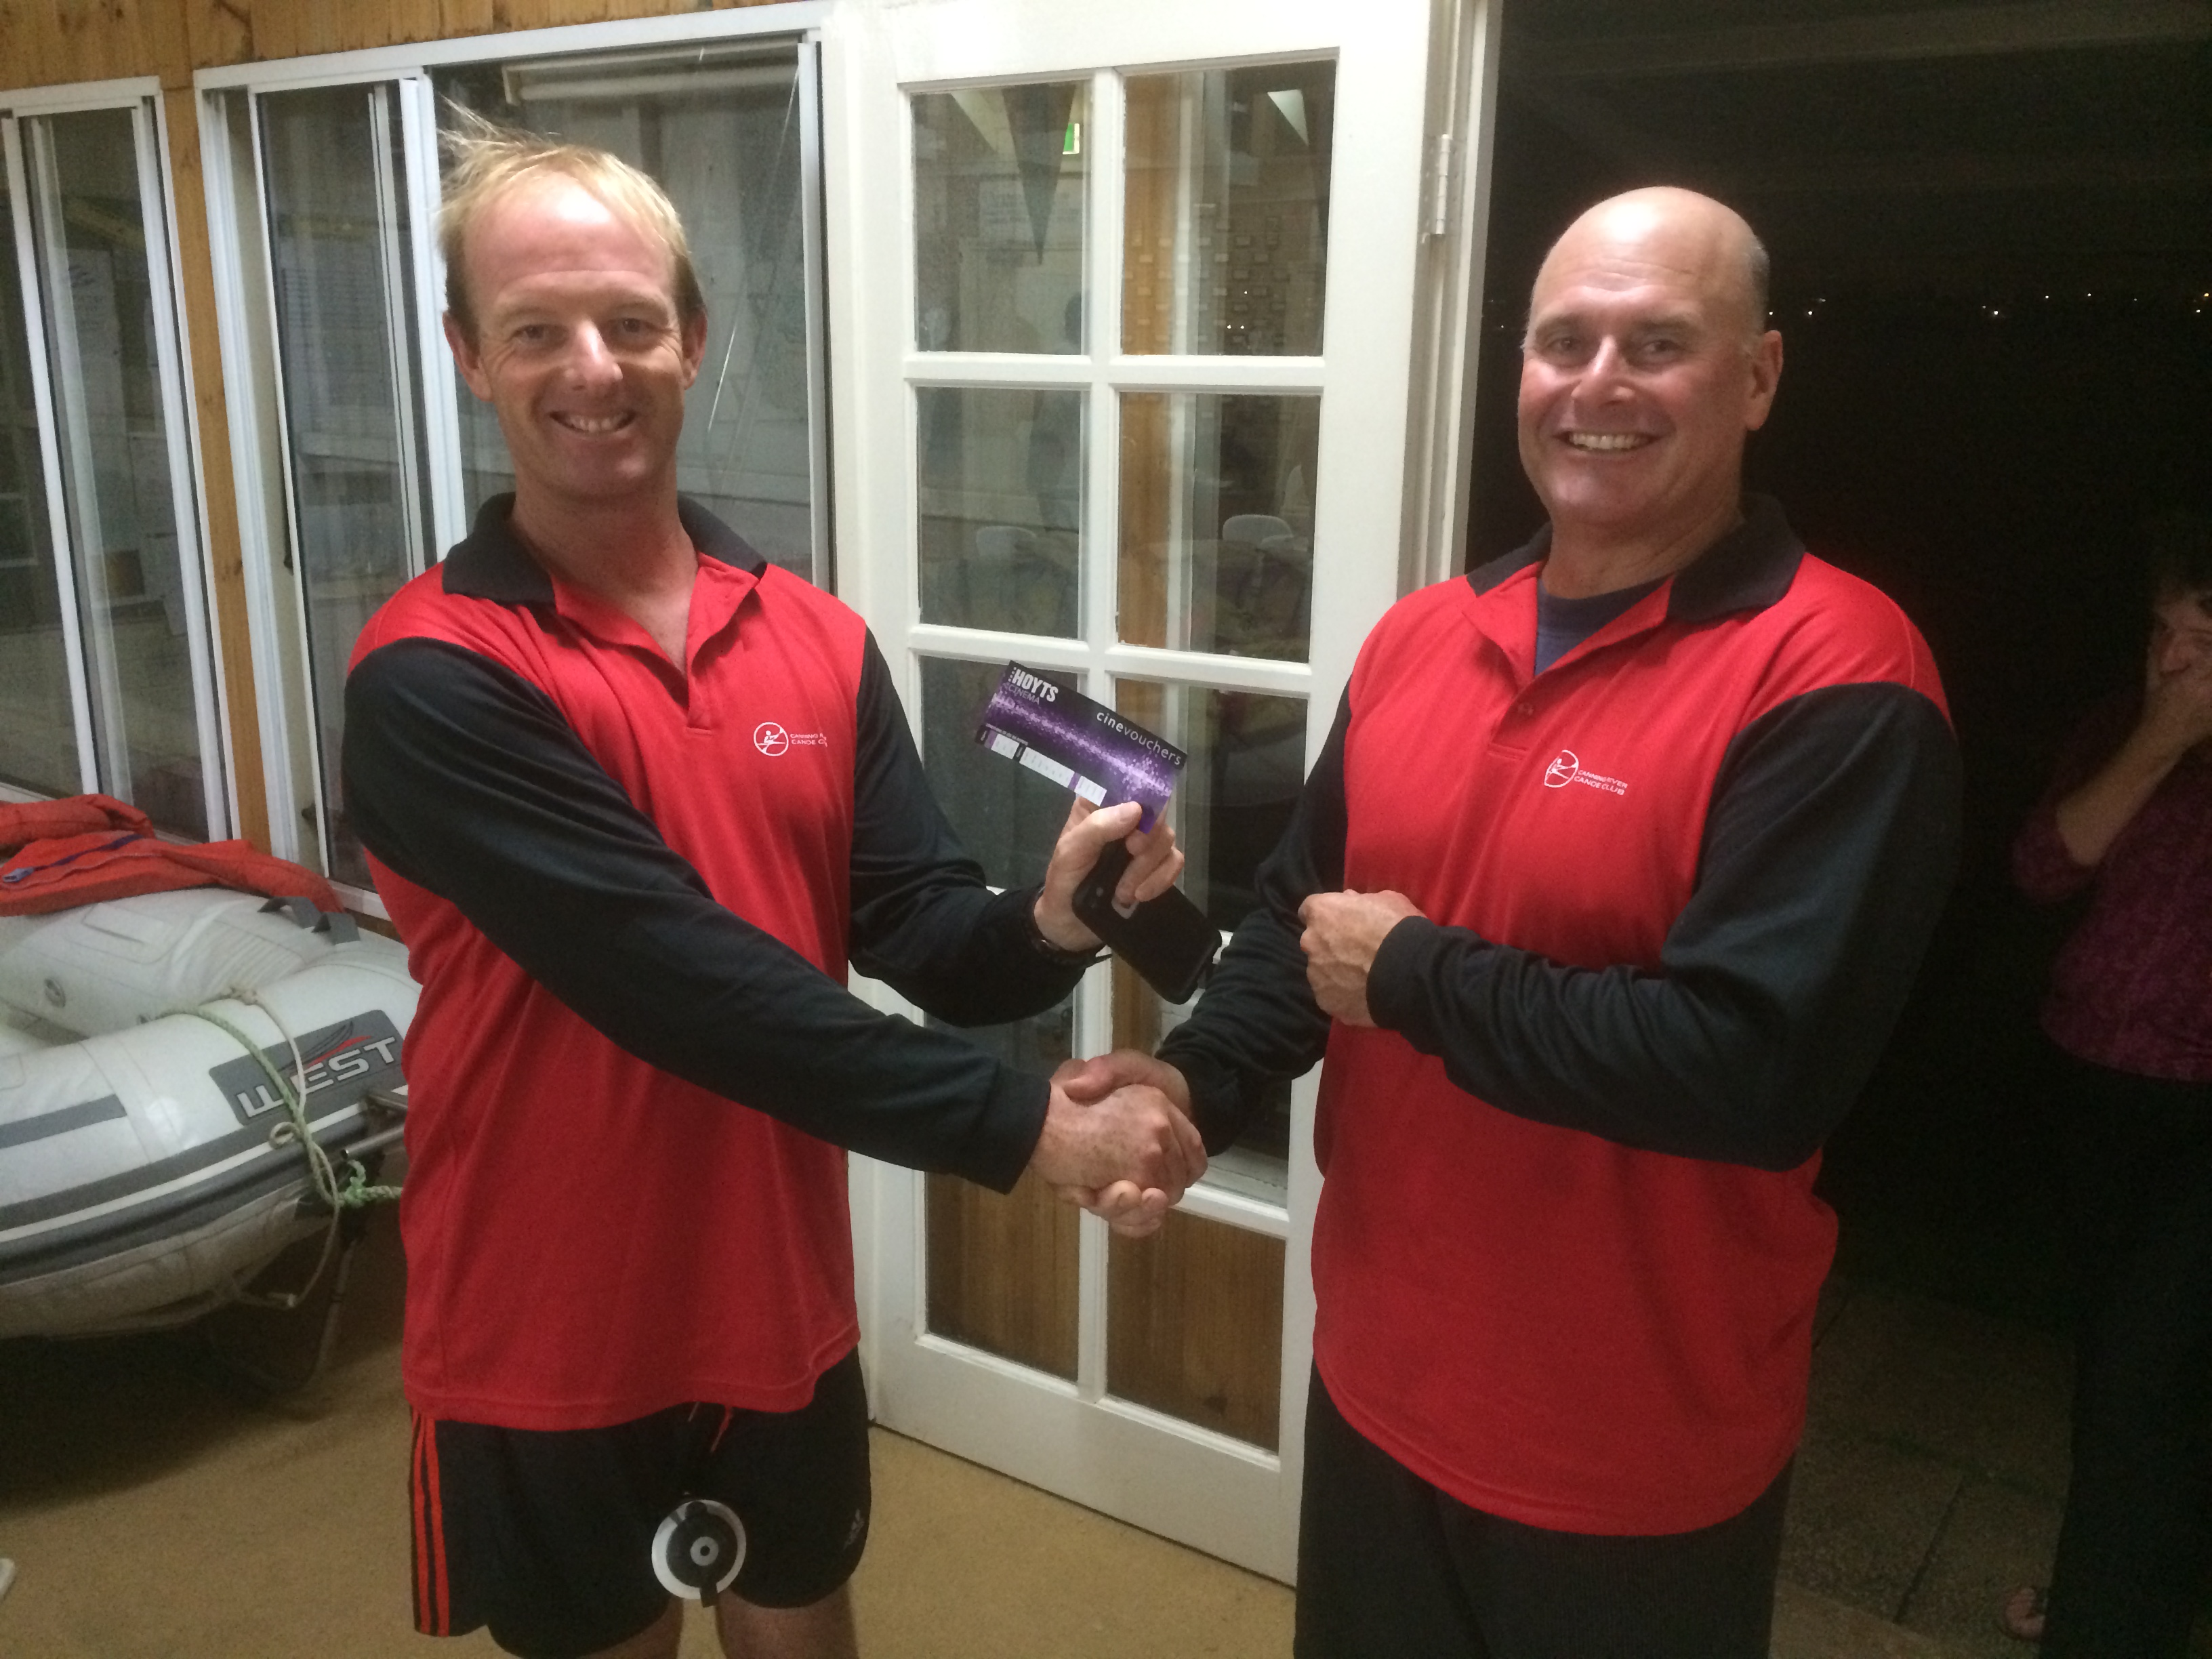 ues 7th April 2015 : Peter Burge presenting tonights winner Jeff Lohrey with a movie voucher